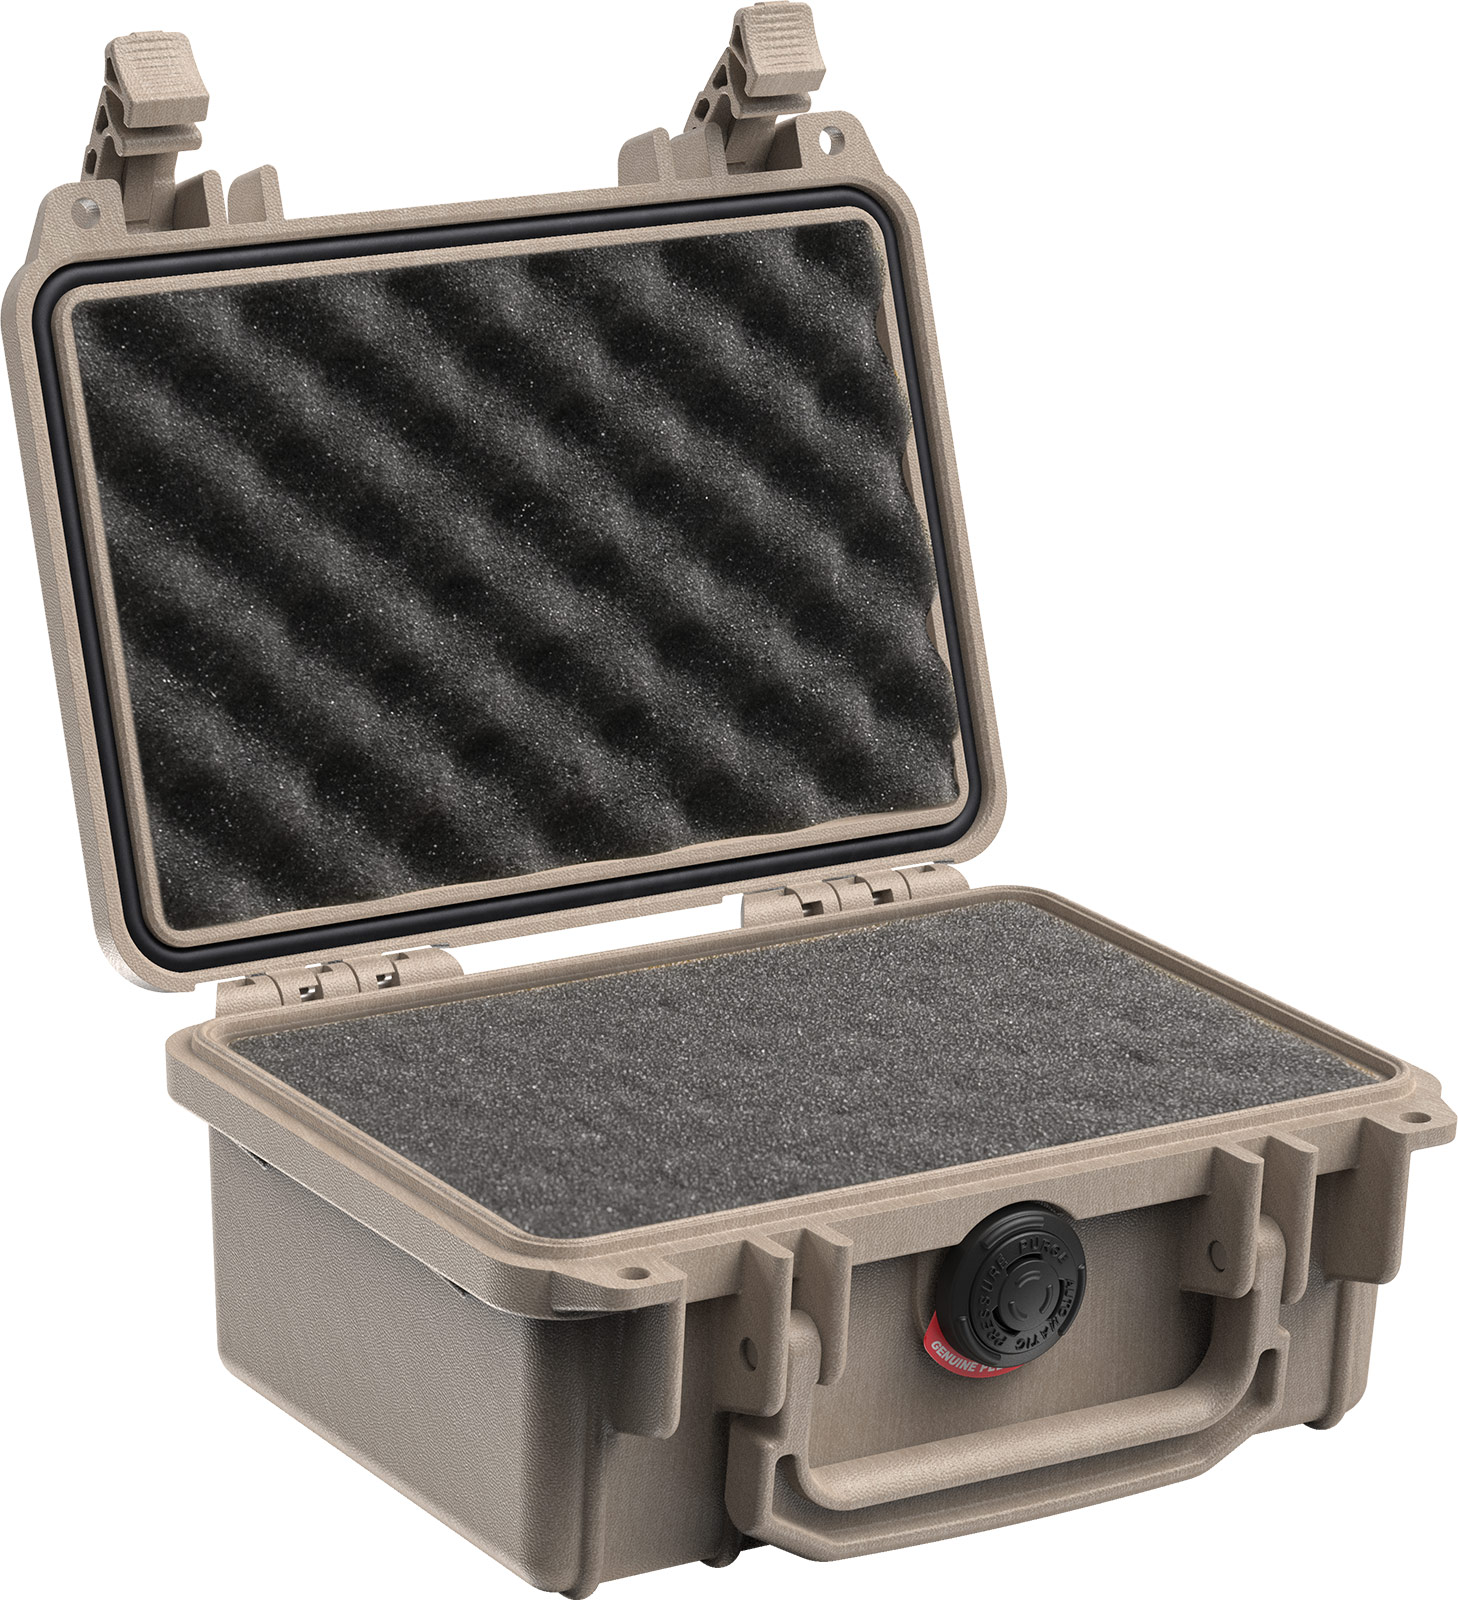 pelican watertight protective 1120 hard case